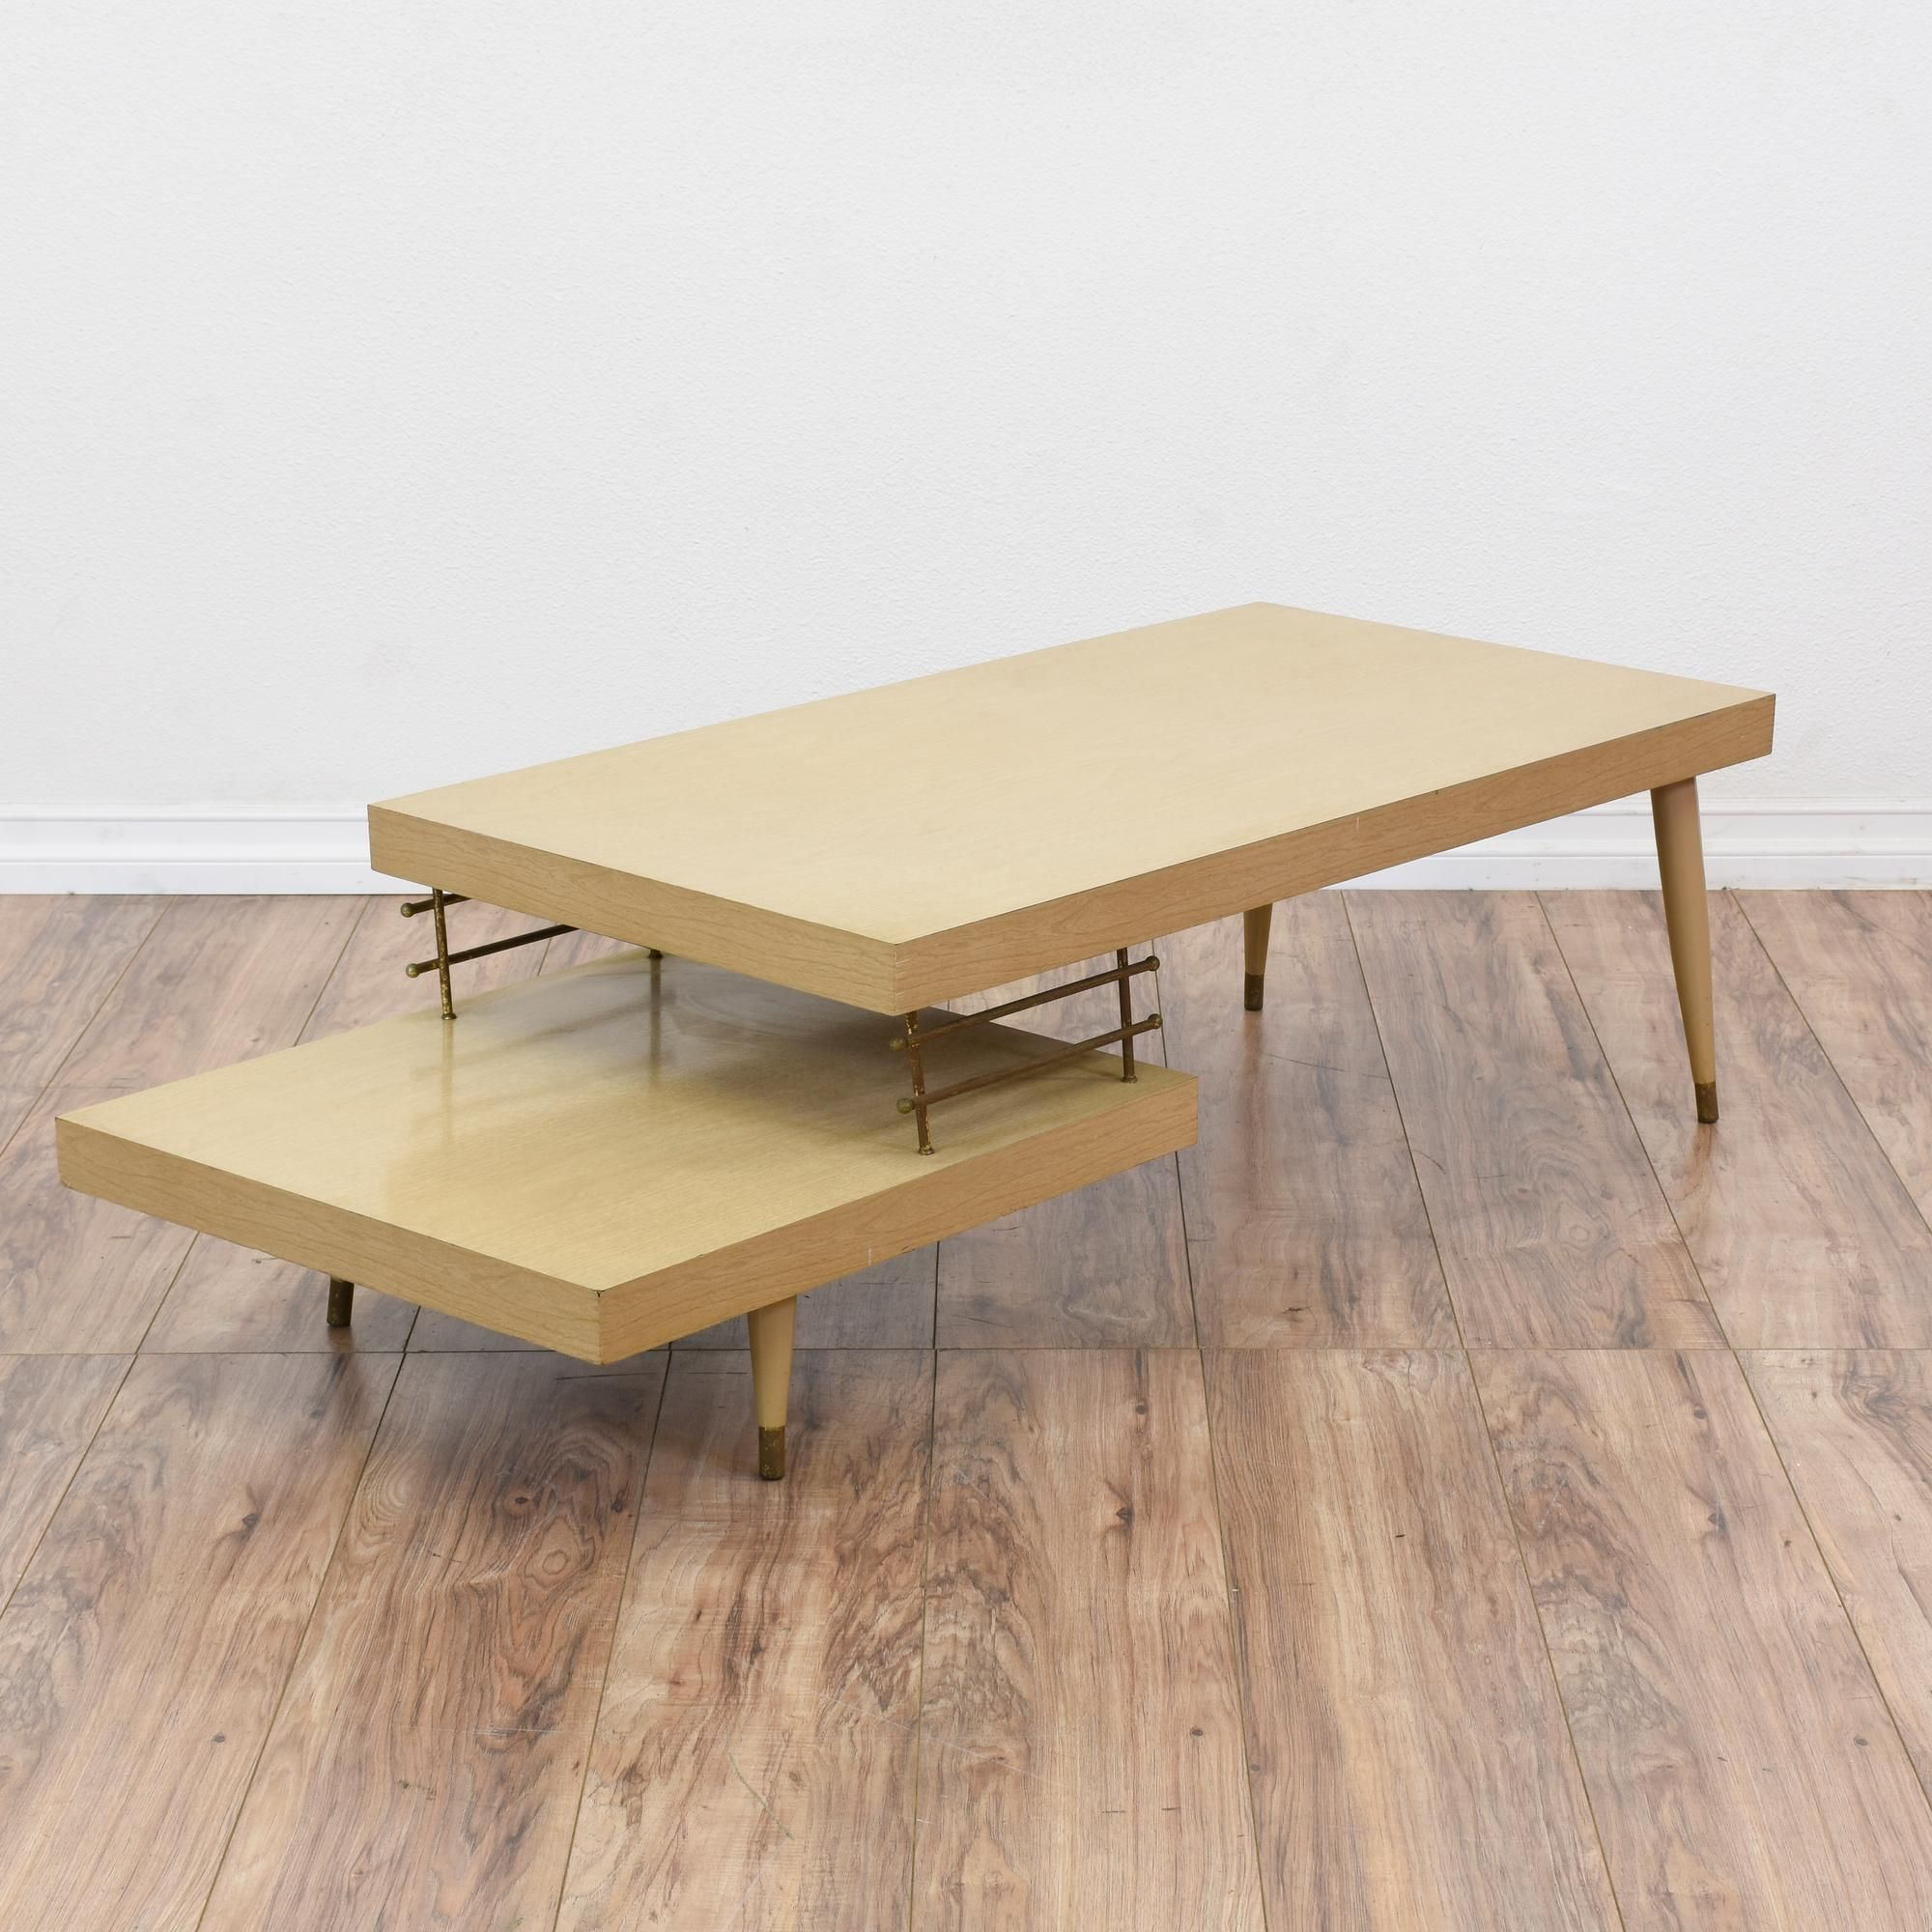 Solid Wood Mid Century Coffee Table: This Mid Century Modern Coffee Table Is Featured In A